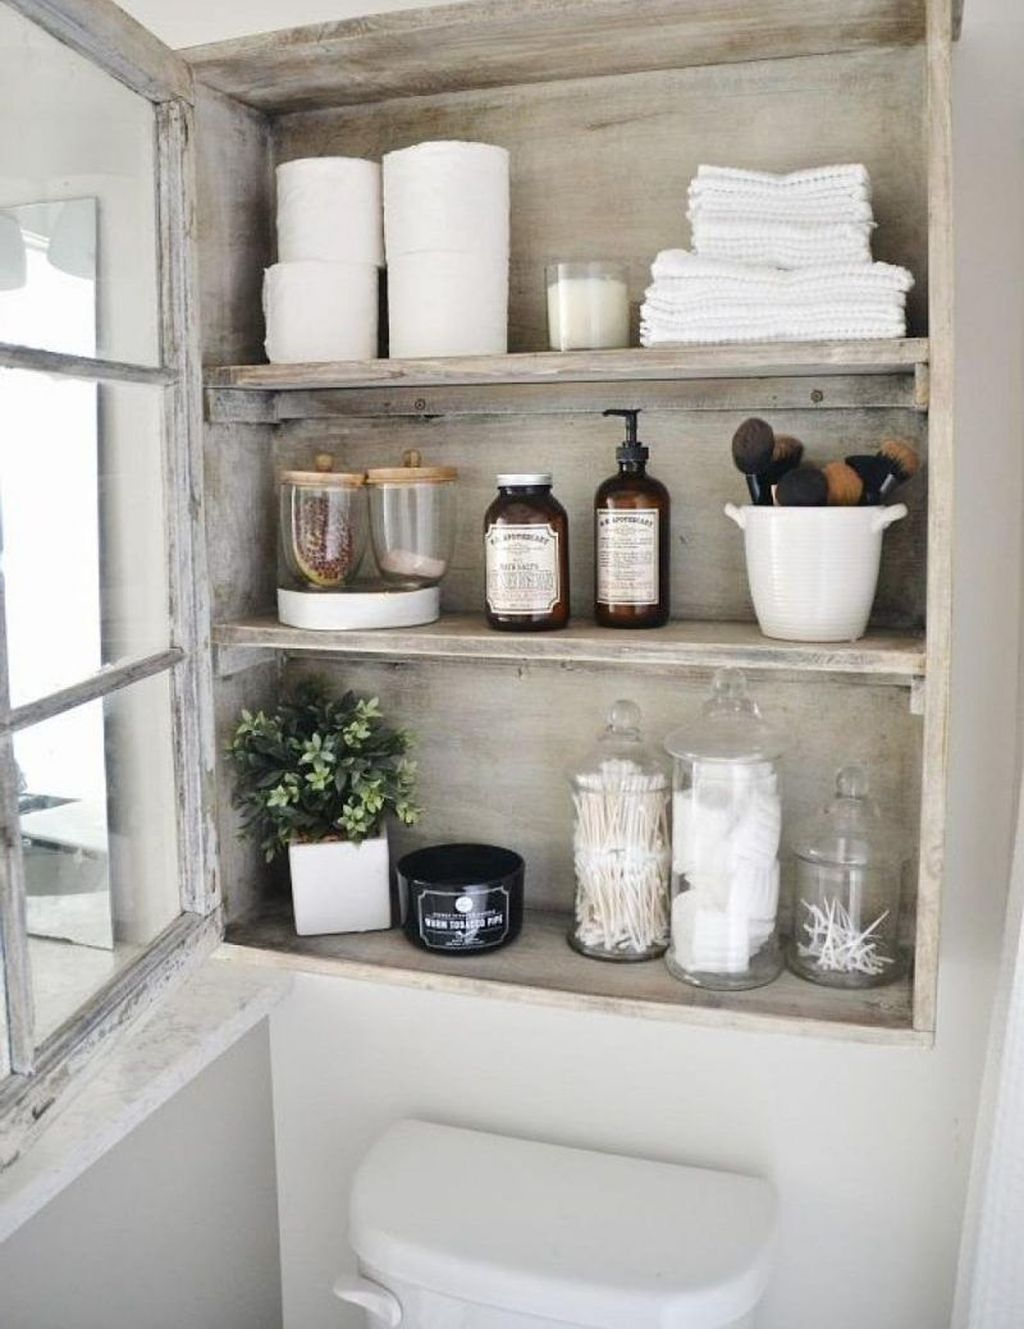 49 Cool Bathroom Storage Concepts Ideas For Your Bathroom Badezimmer Accessoires Shabby Chic Badezimmer Haus Deko